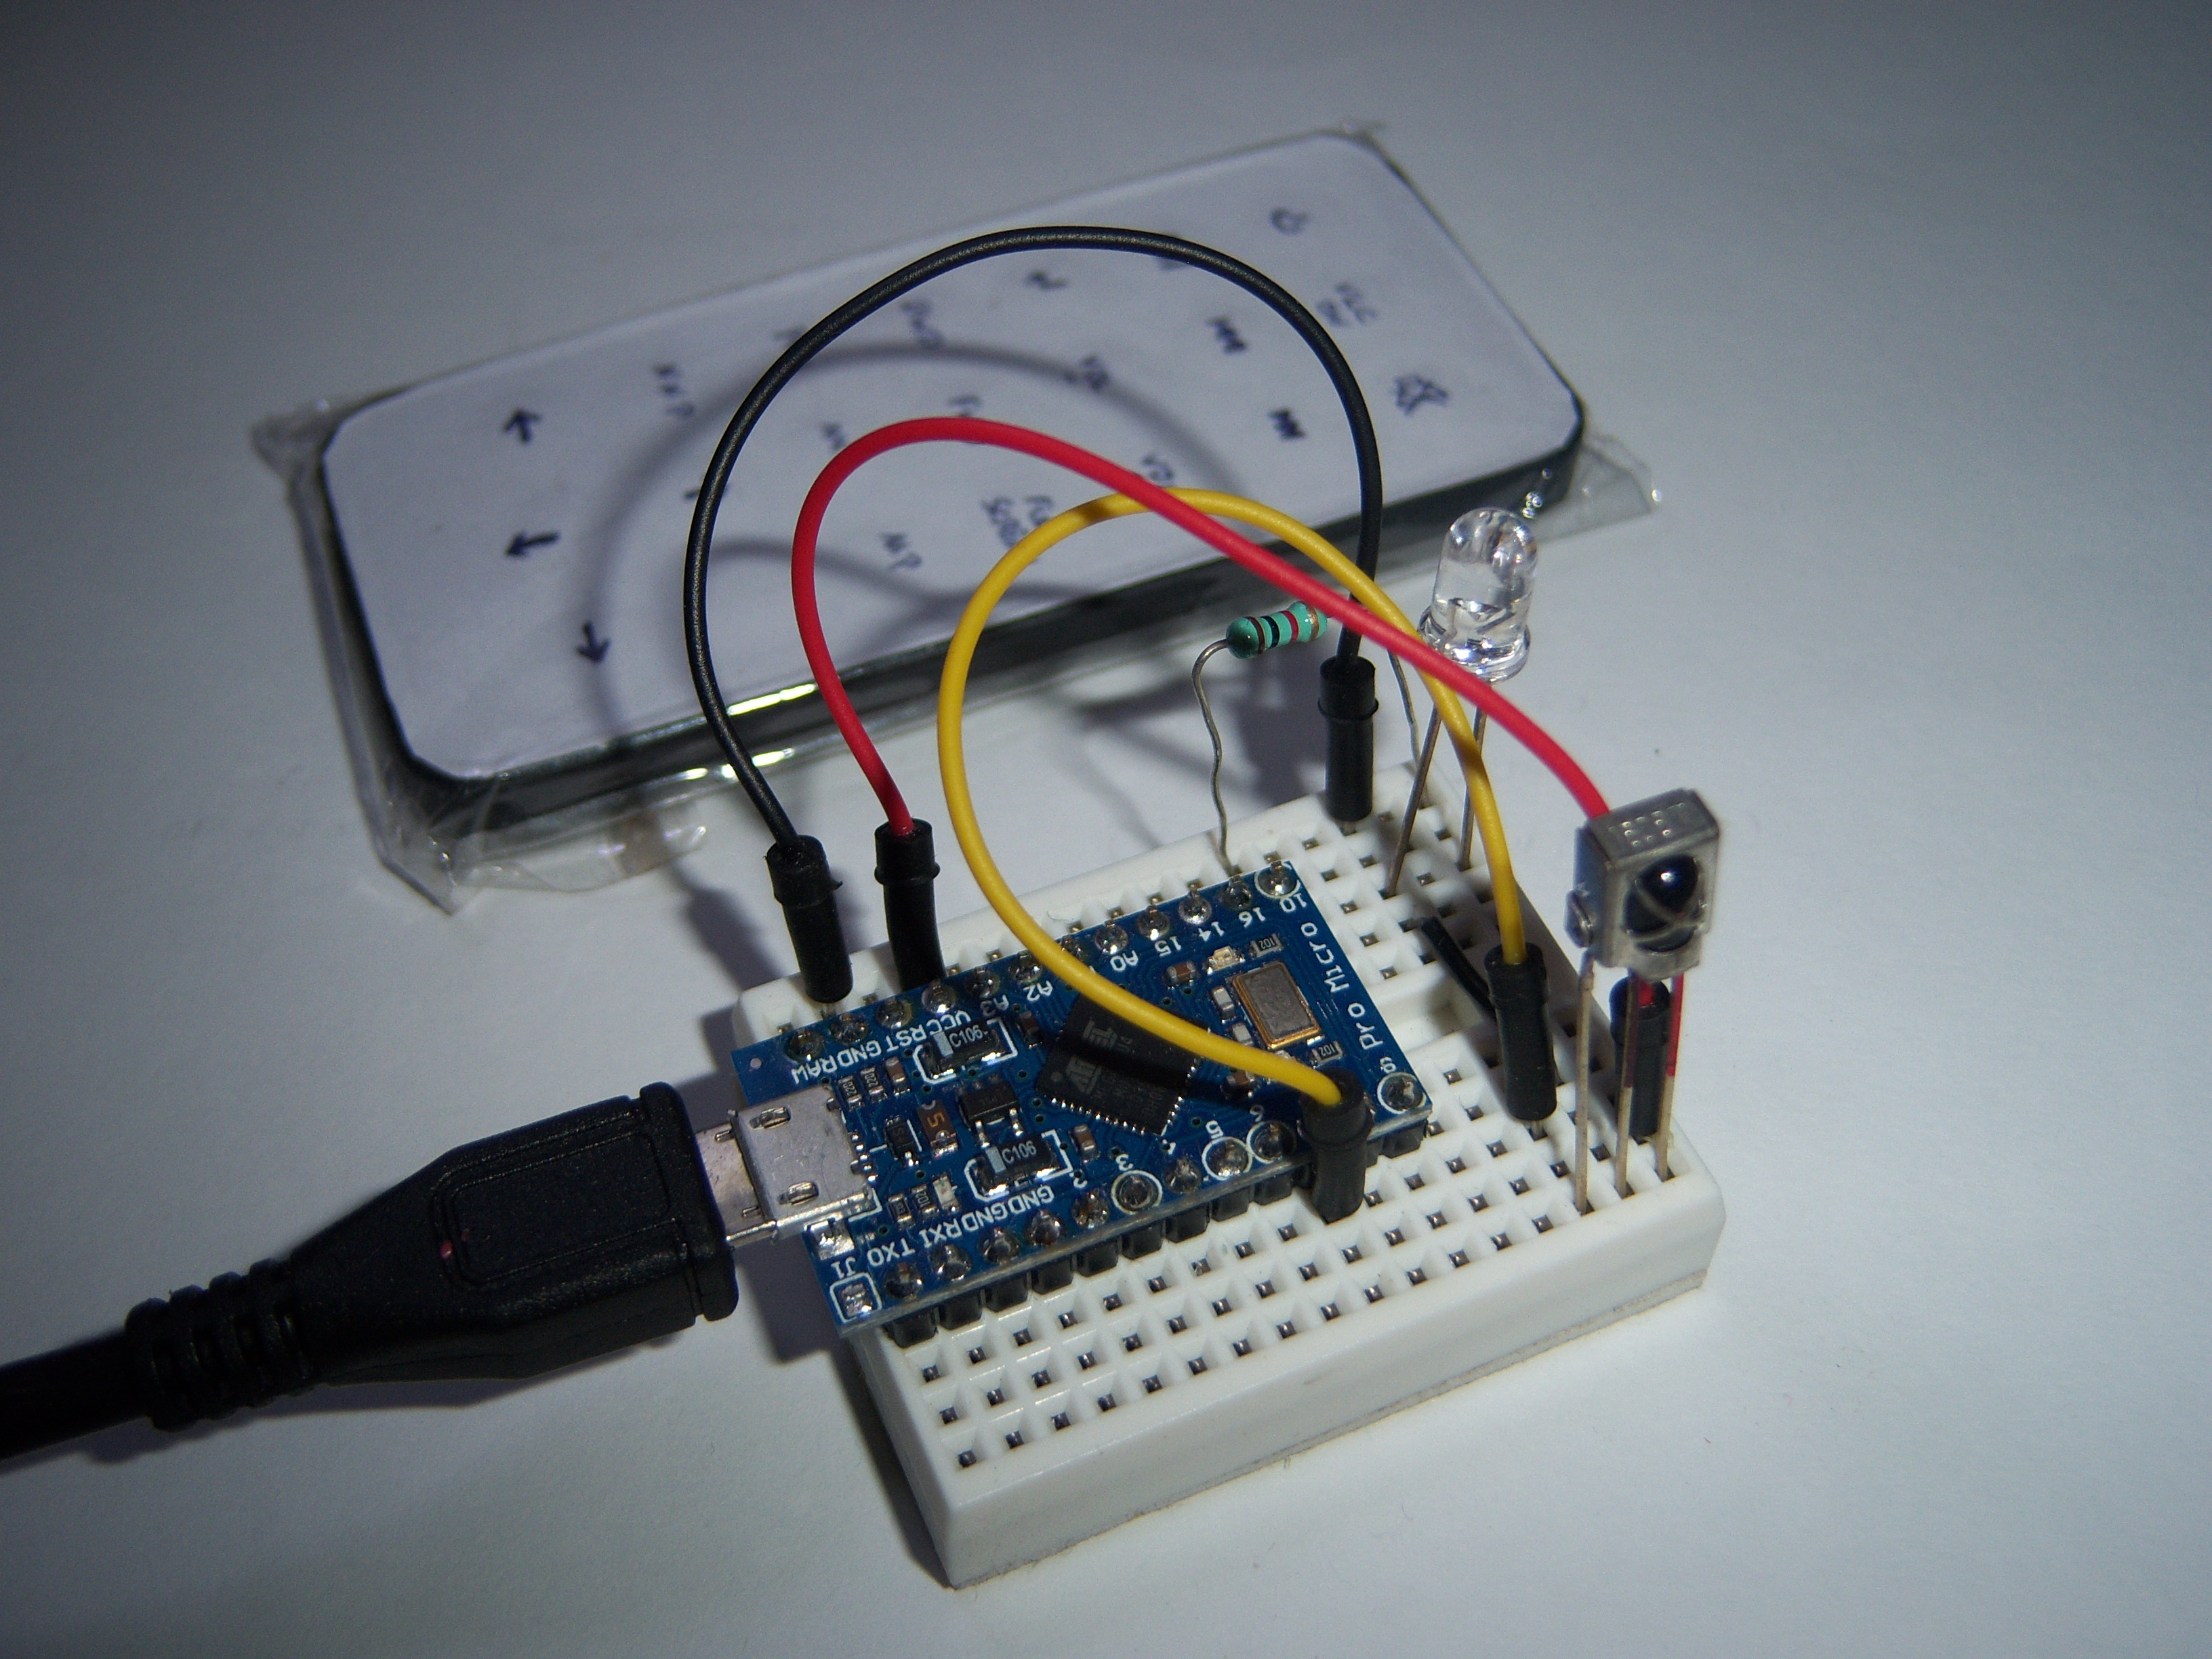 Picture of PC Remote Control Using Arduino Pro Micro